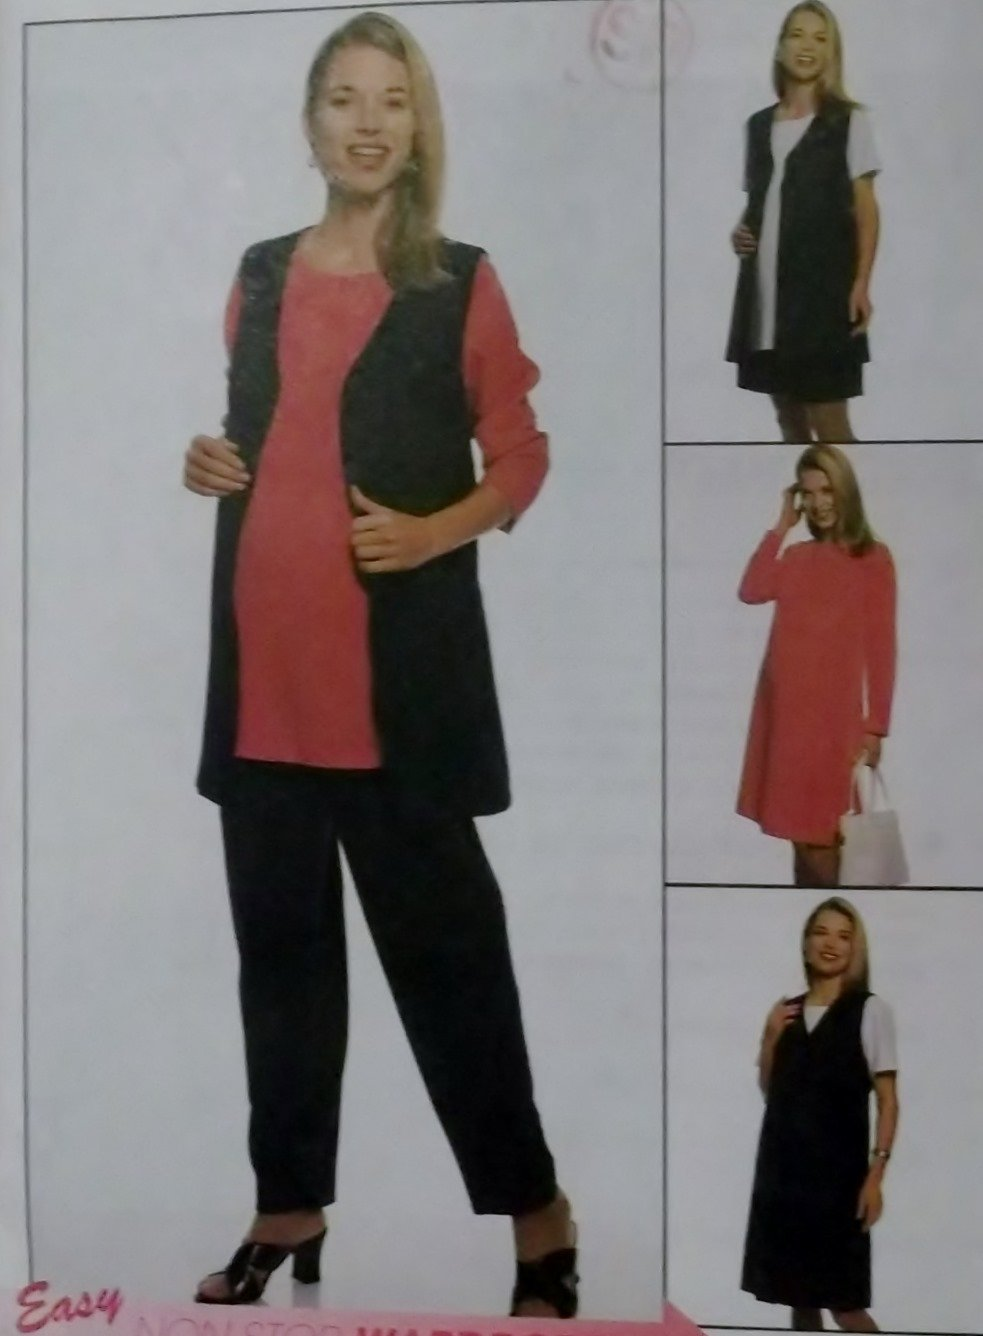 Easy McCalls 9305 Sewing Pattern, Misses' Maternity Wardrobe, Plus Size 16 18 20, UNCUT